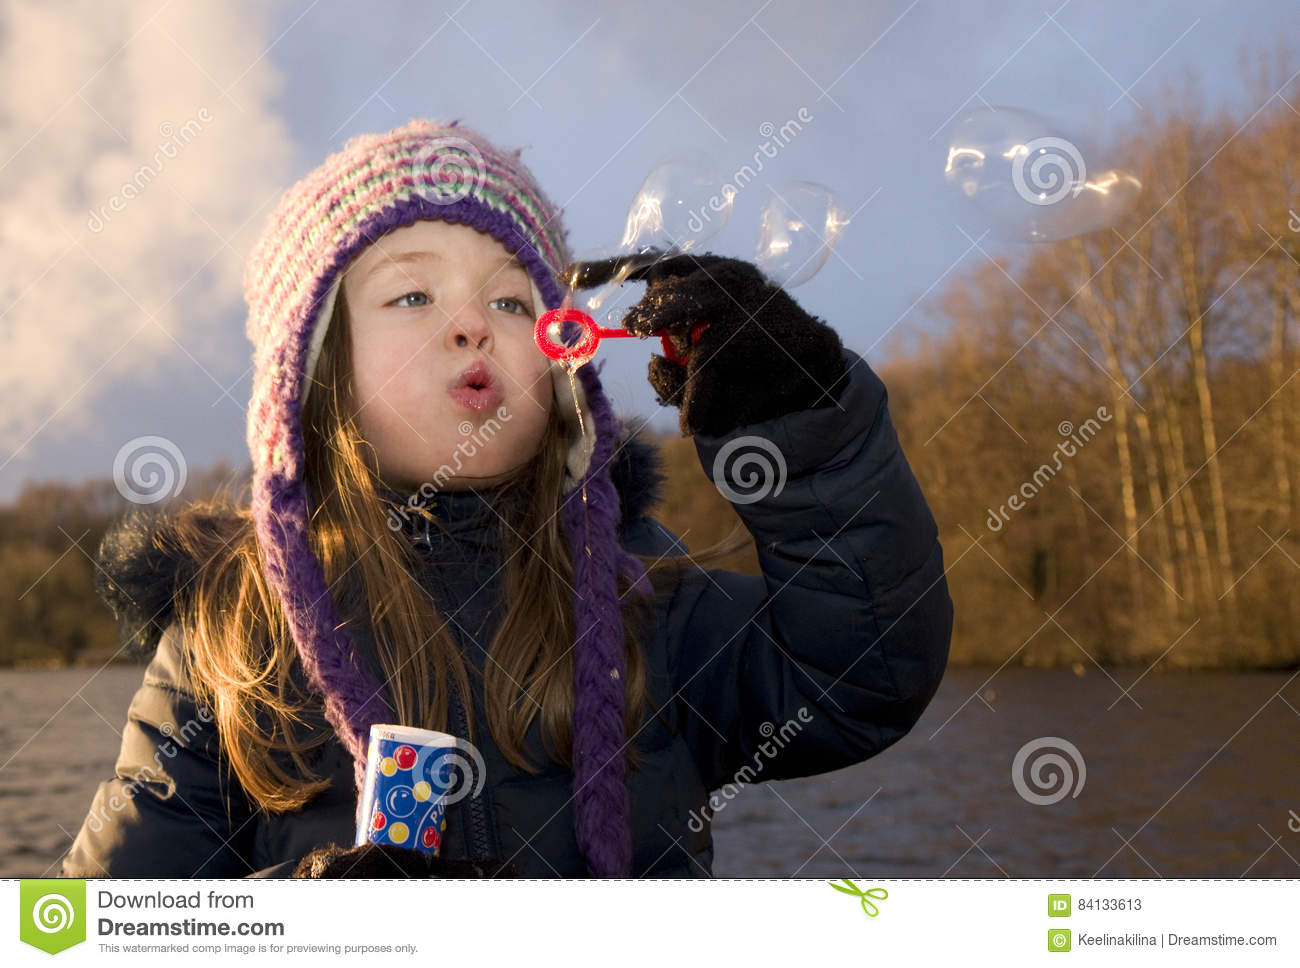 Child enjoys playing with soap bubbles at sunset